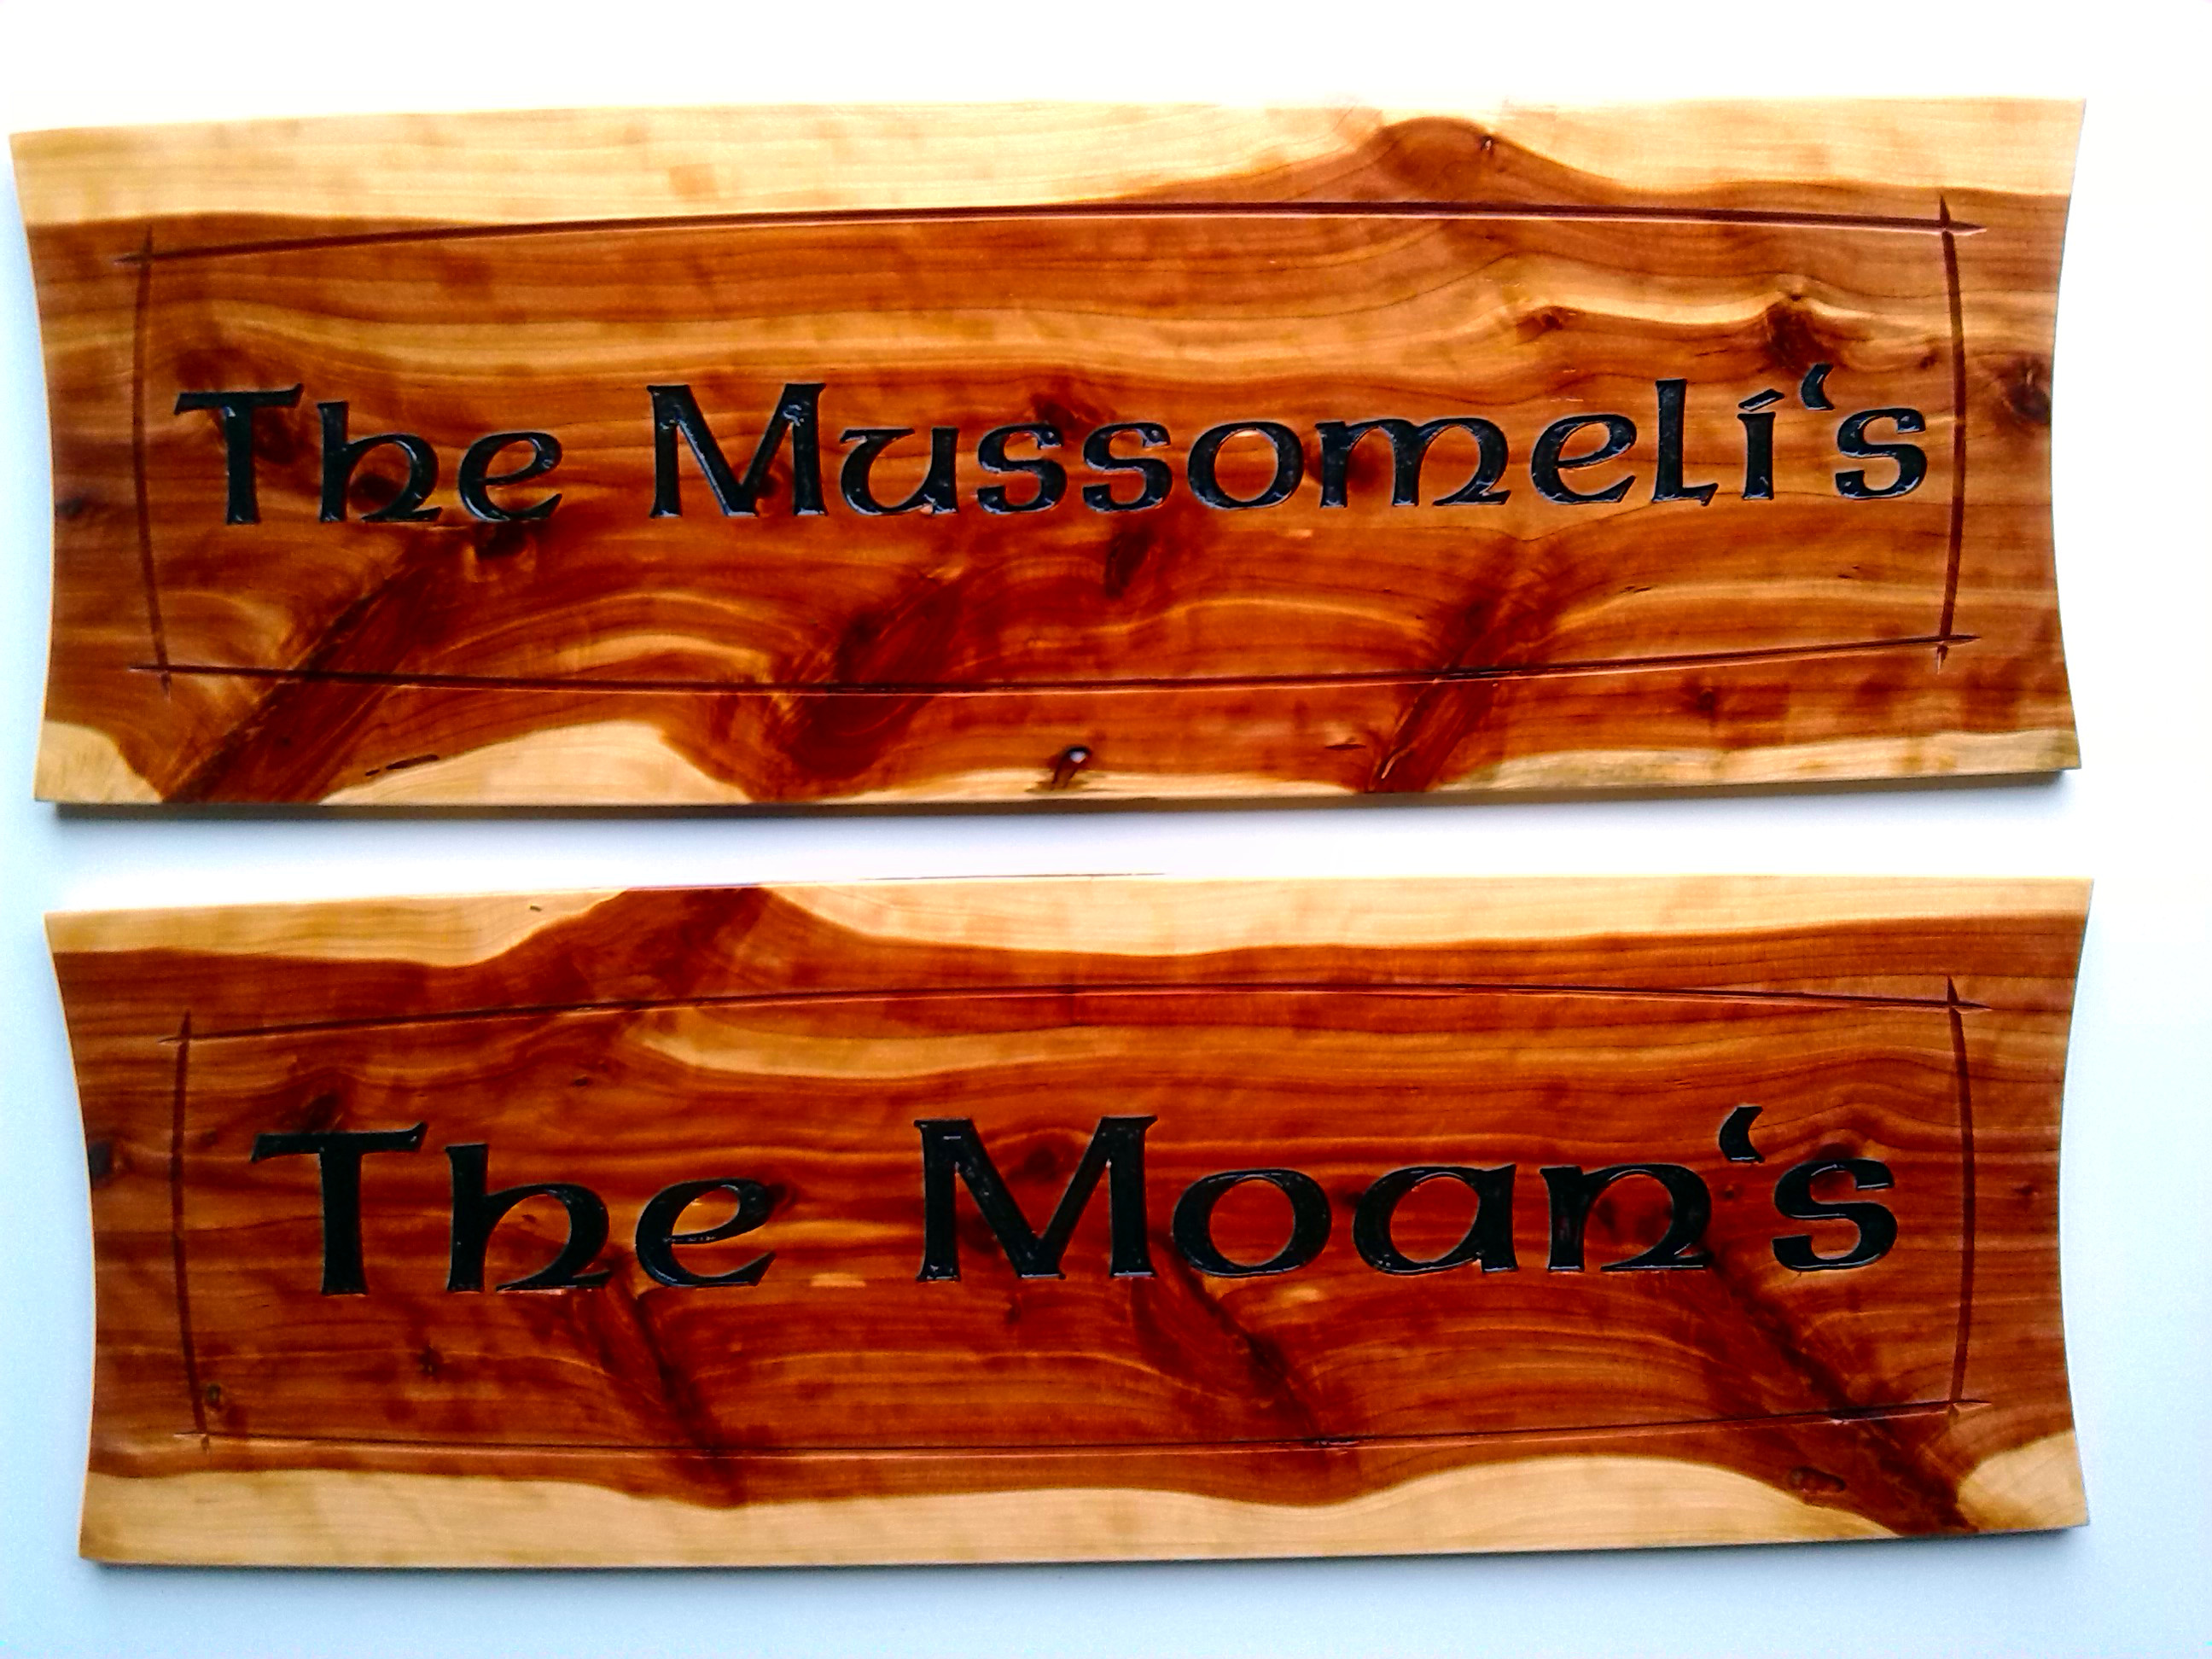 Carved bar wood sign